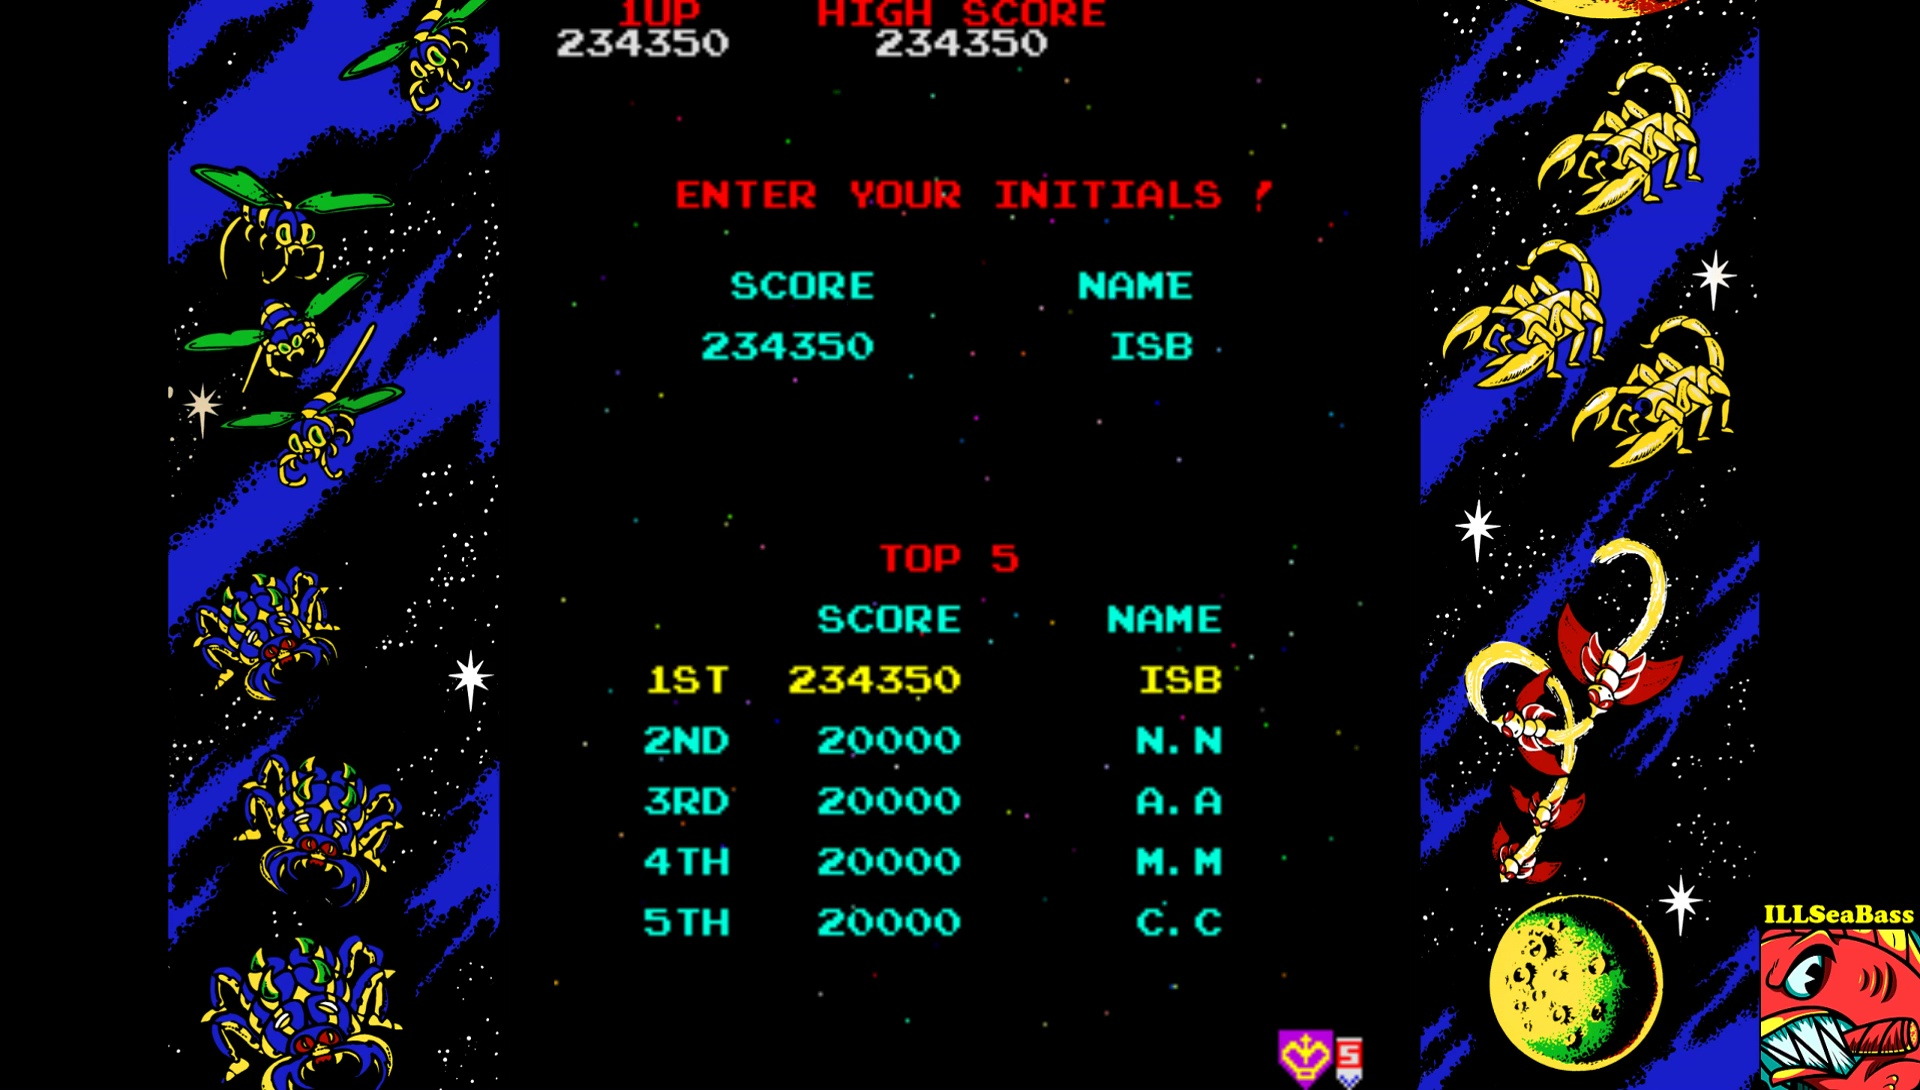 ILLSeaBass: Galaga (Arcade Emulated / M.A.M.E.) 234,450 points on 2017-08-21 21:44:19